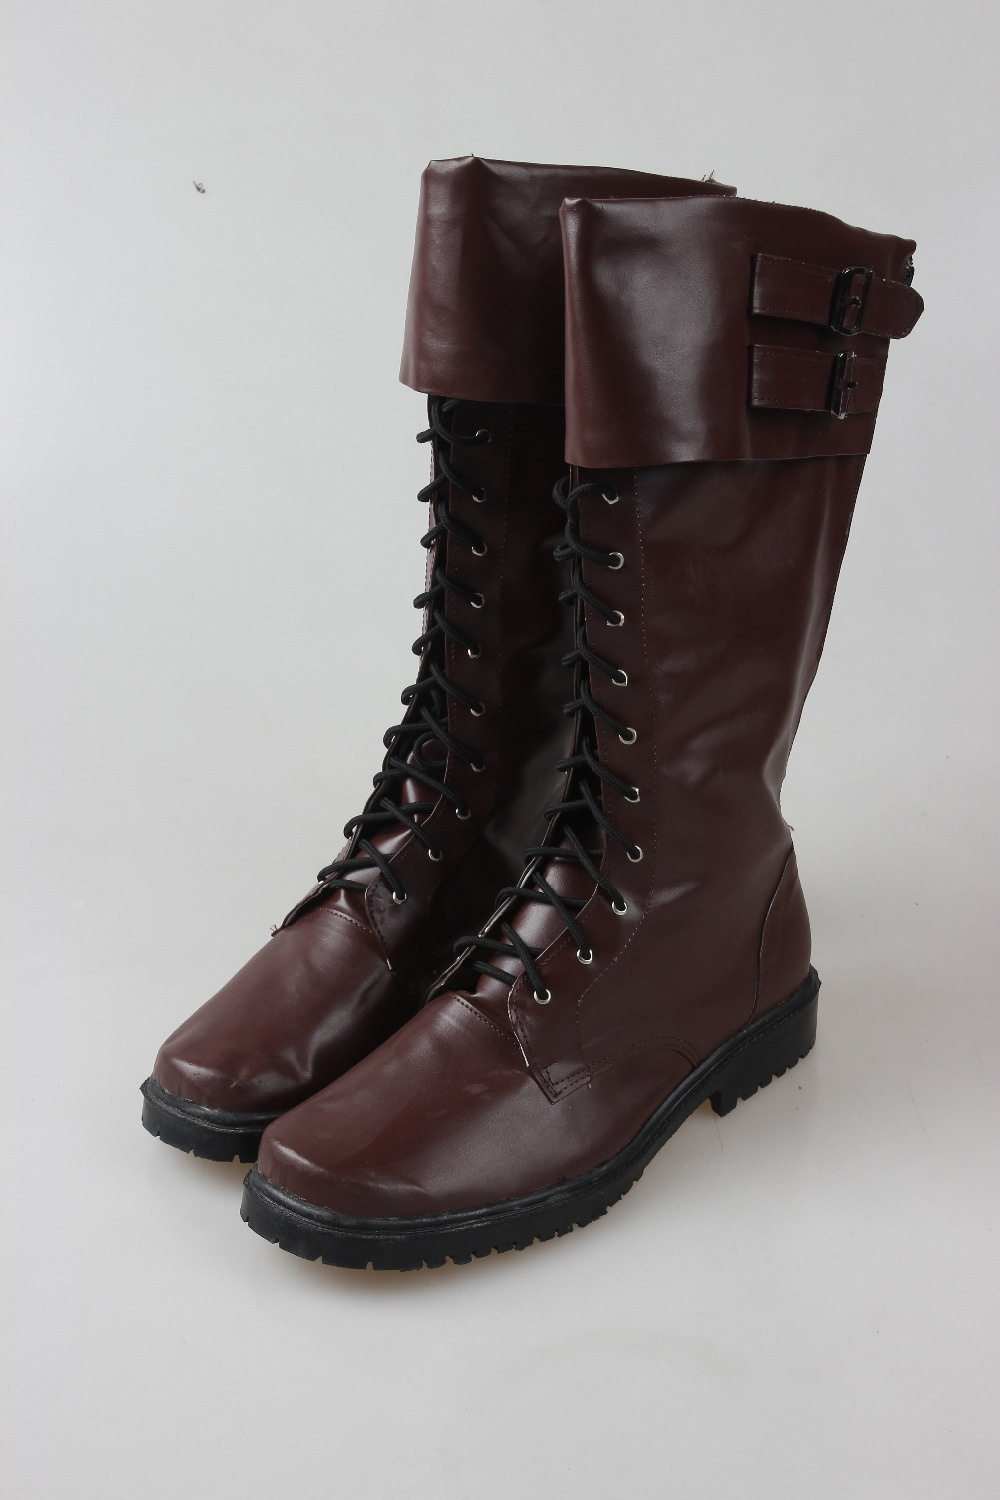 Steve Rogers Cosplay Boots Captain America The First Avenger Shoes Superhero Brown Boots Adult Men Halloween Accessories Props new marvel the avengers age of ultron captain america cosplay costume steve rogers outfits adult superhero costume